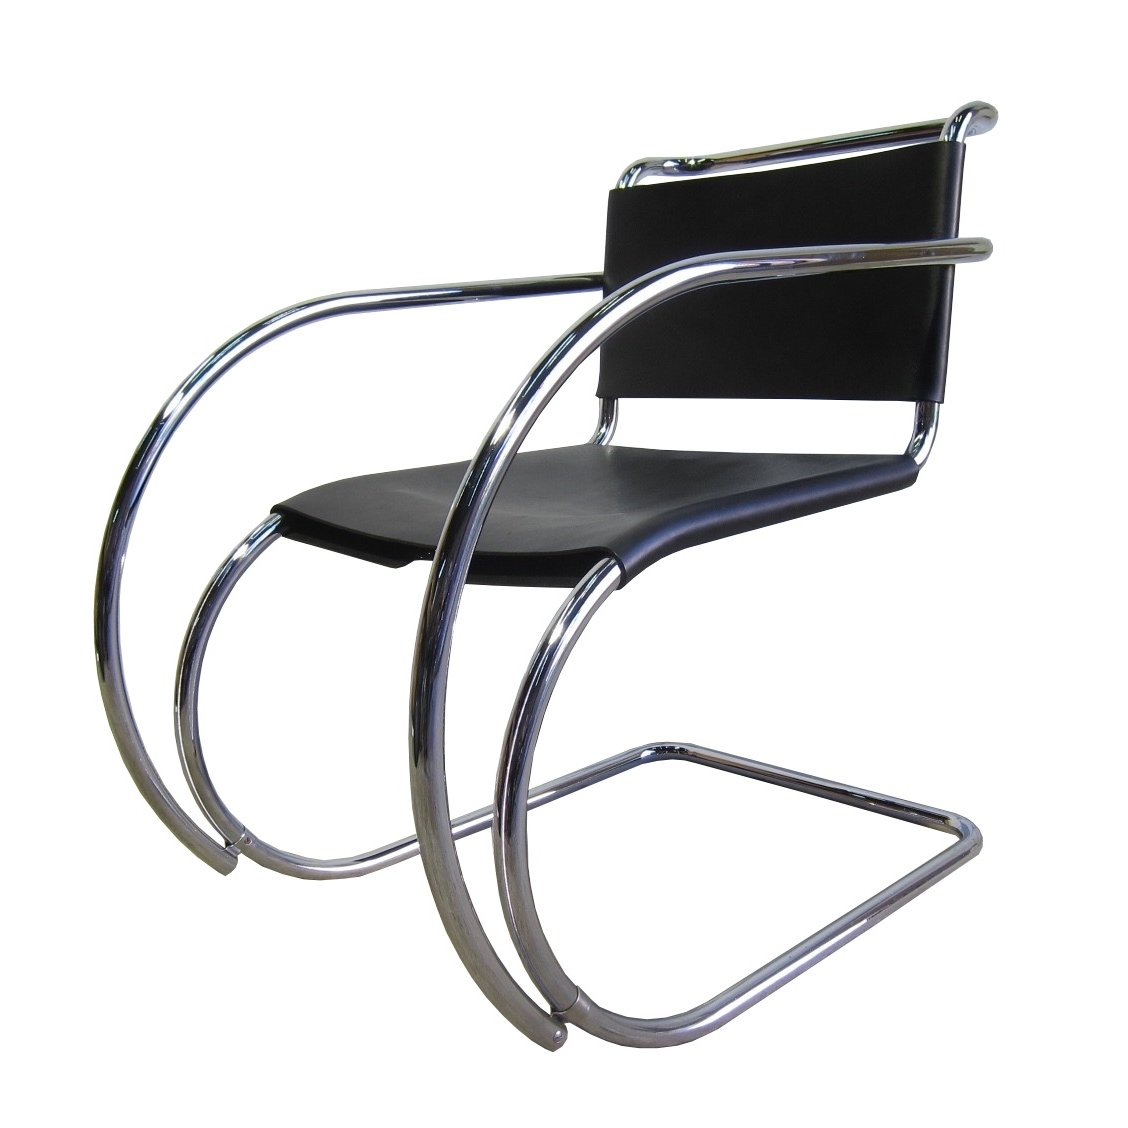 Vintage Mr Chair By Ludwig Mies Van Der Rohe For Knoll 1990s 71832